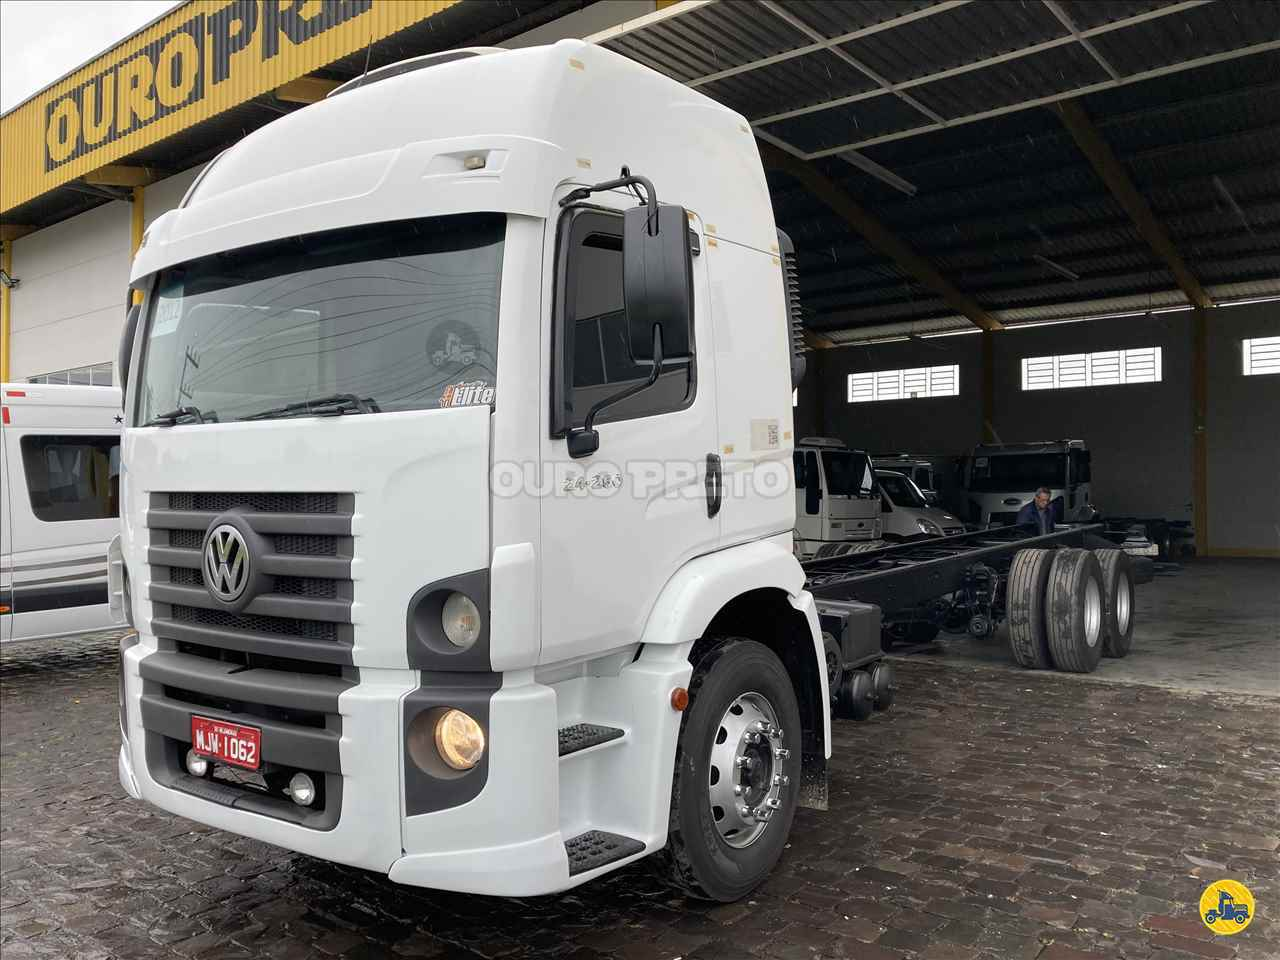 CAMINHAO VOLKSWAGEN VW 24250 Chassis Truck 6x2 Ouro Preto Caminhões LAGES SANTA CATARINA SC